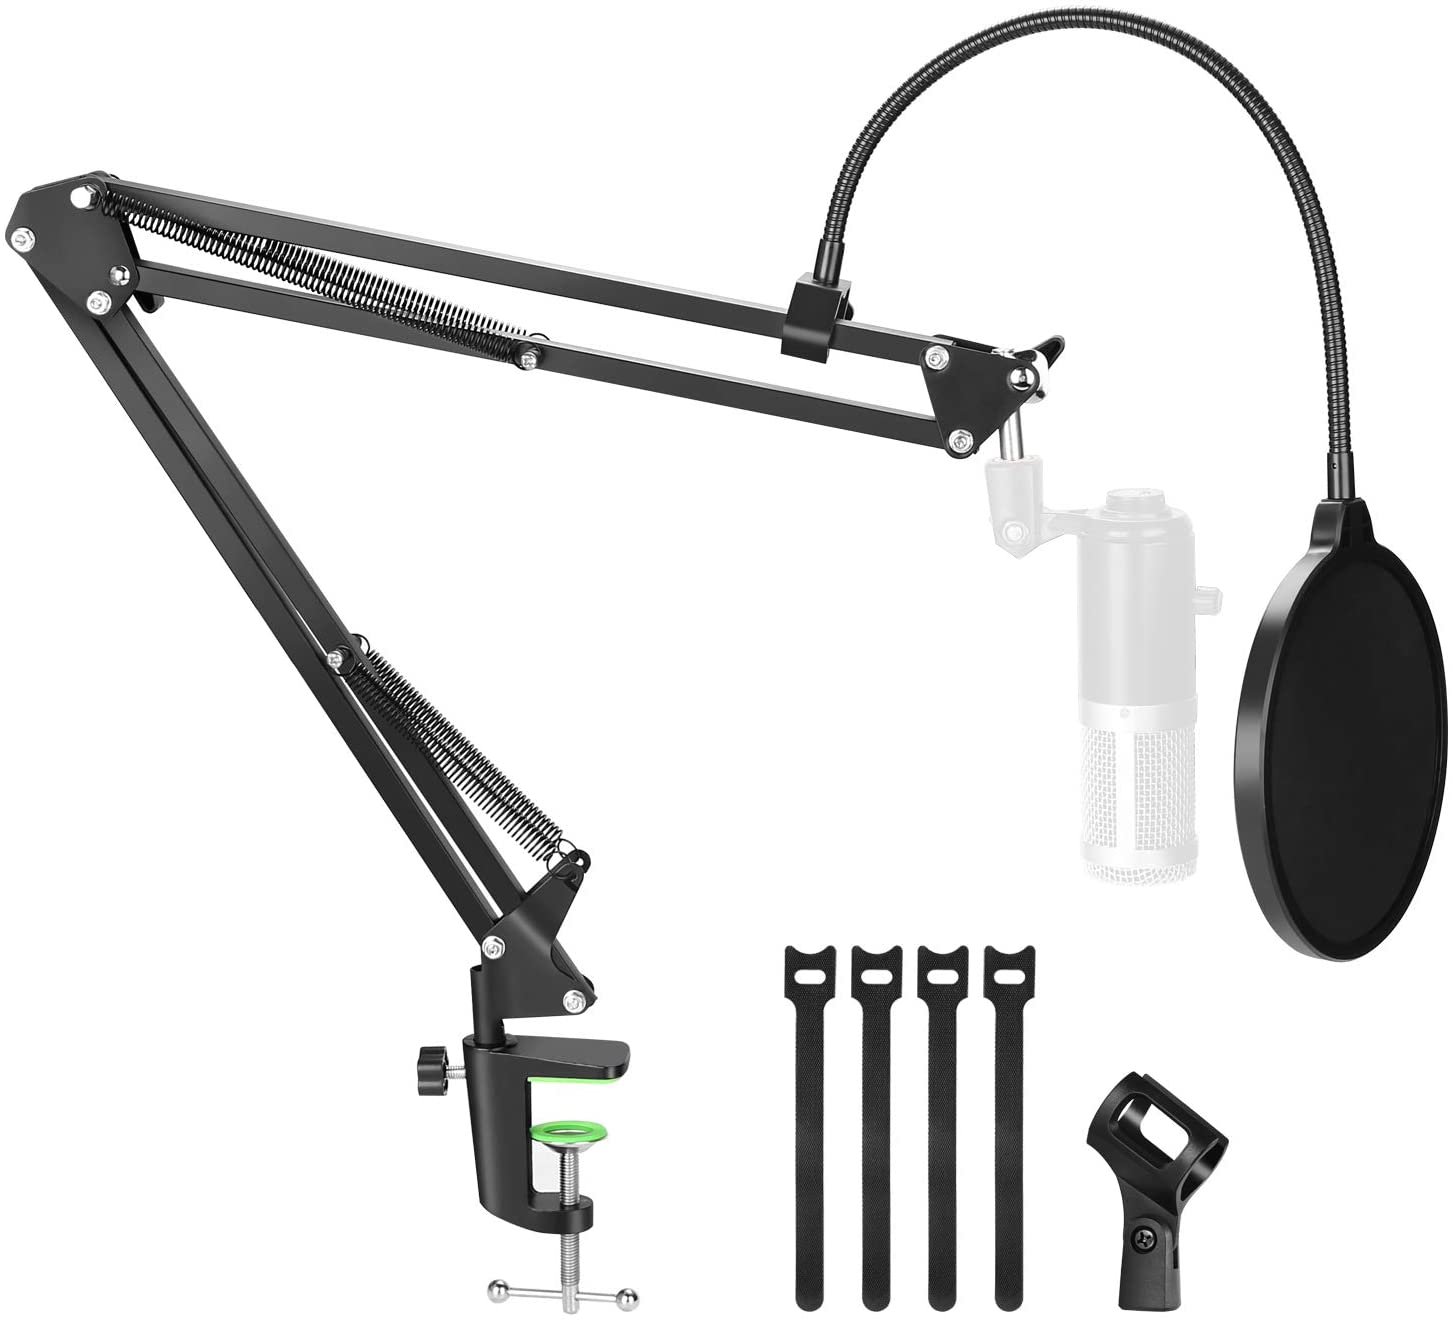 Microphone Stand, AGPTEK Upgraded Version Microphone Suspension Scissor Arm Stand with Pop Filter, Cable Ties and Microphone Holder, Adjustable Desk Microphone Stand for Snow Ball,Blue Yeti,Other Mics